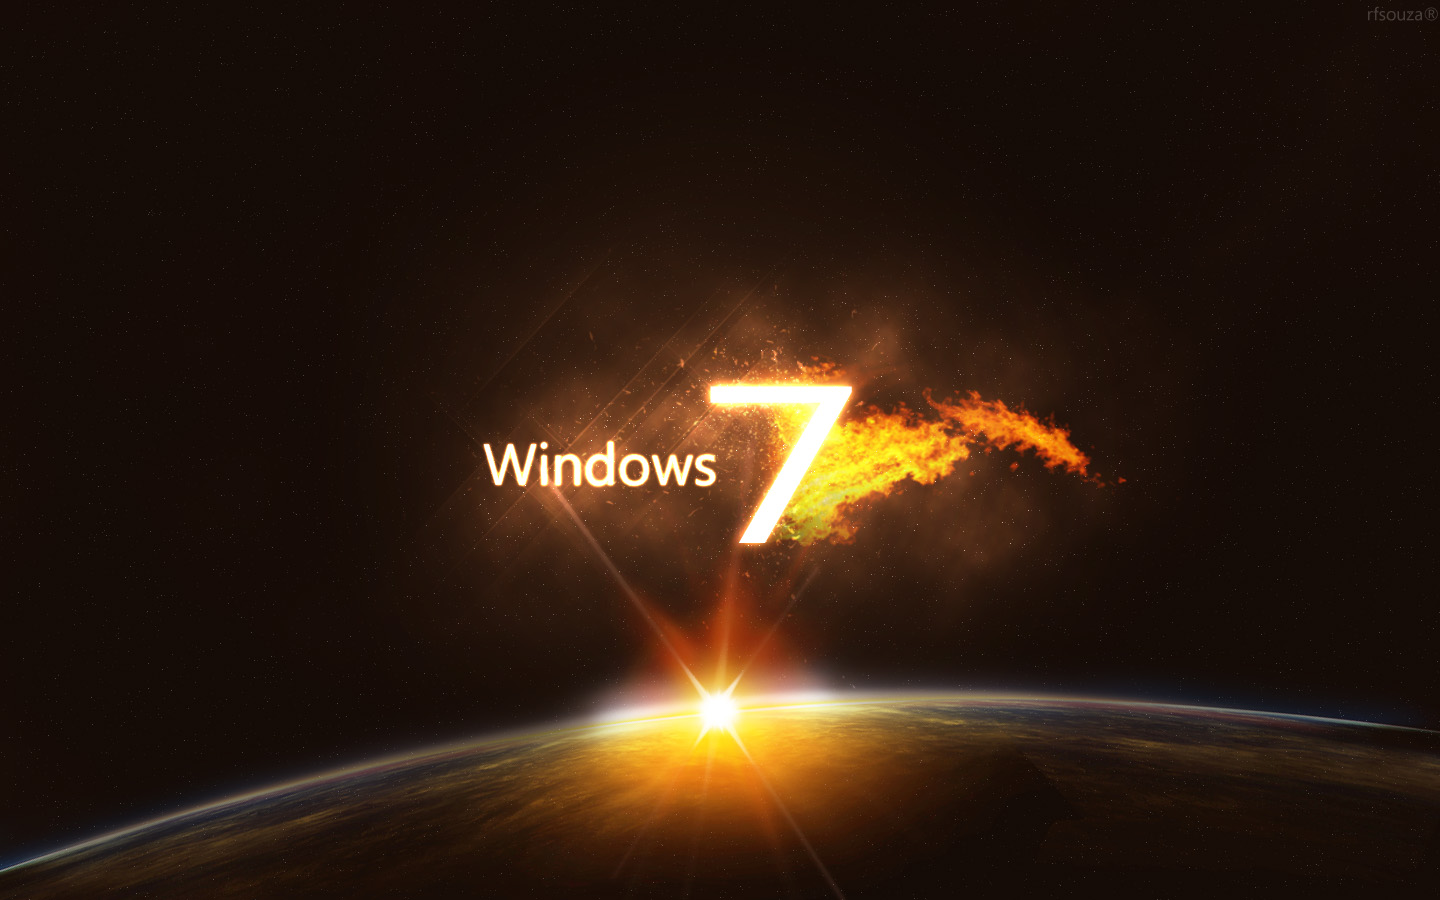 windows-7-wallpaper-hd (14)